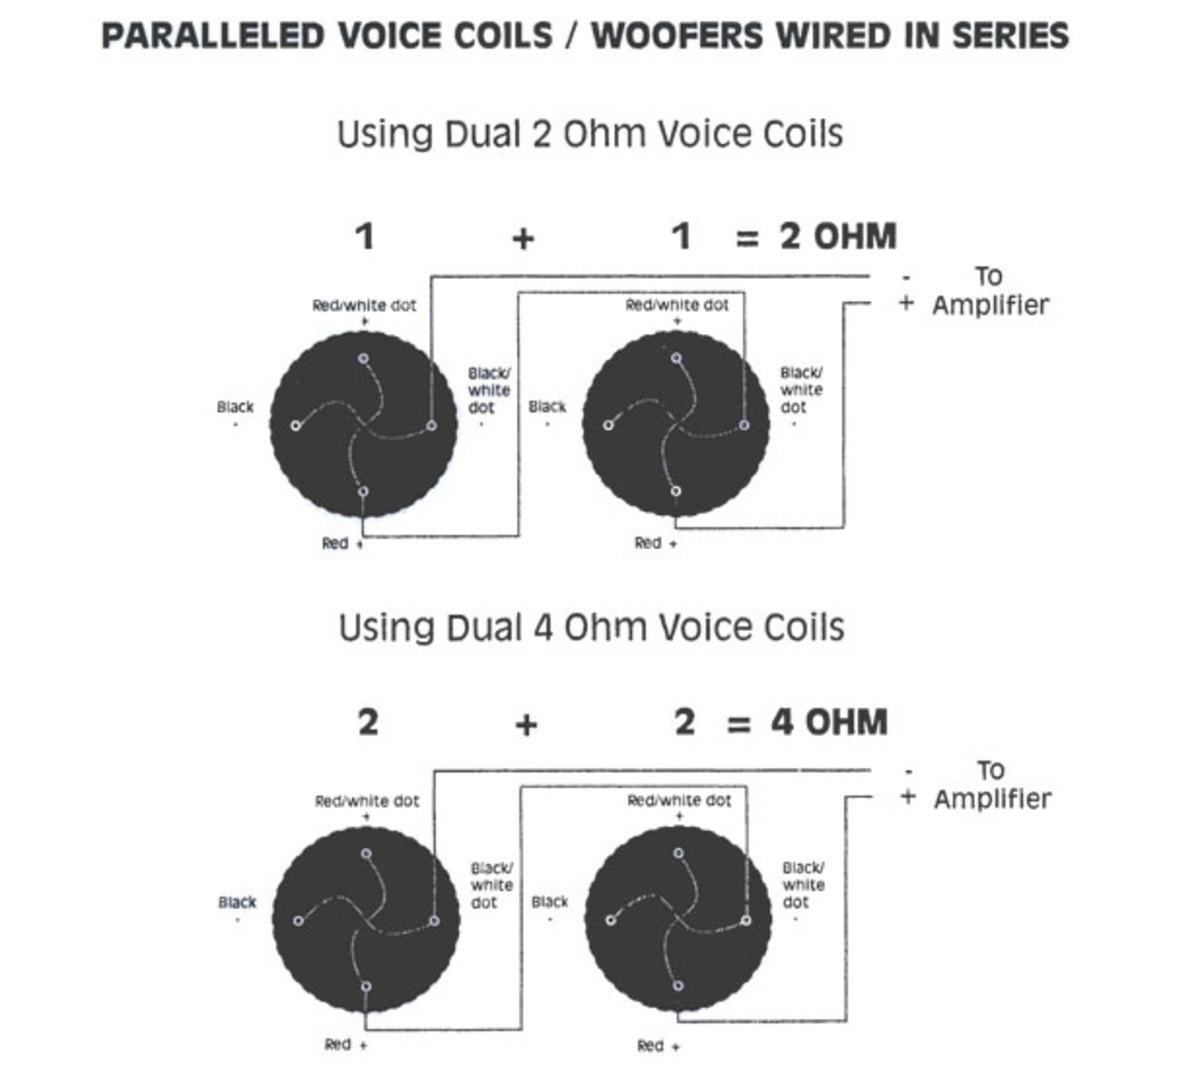 wiring diagram for dvc subs the wiring diagram solo baric dual voice coil subwoofer wiring diagram solo wiring diagram